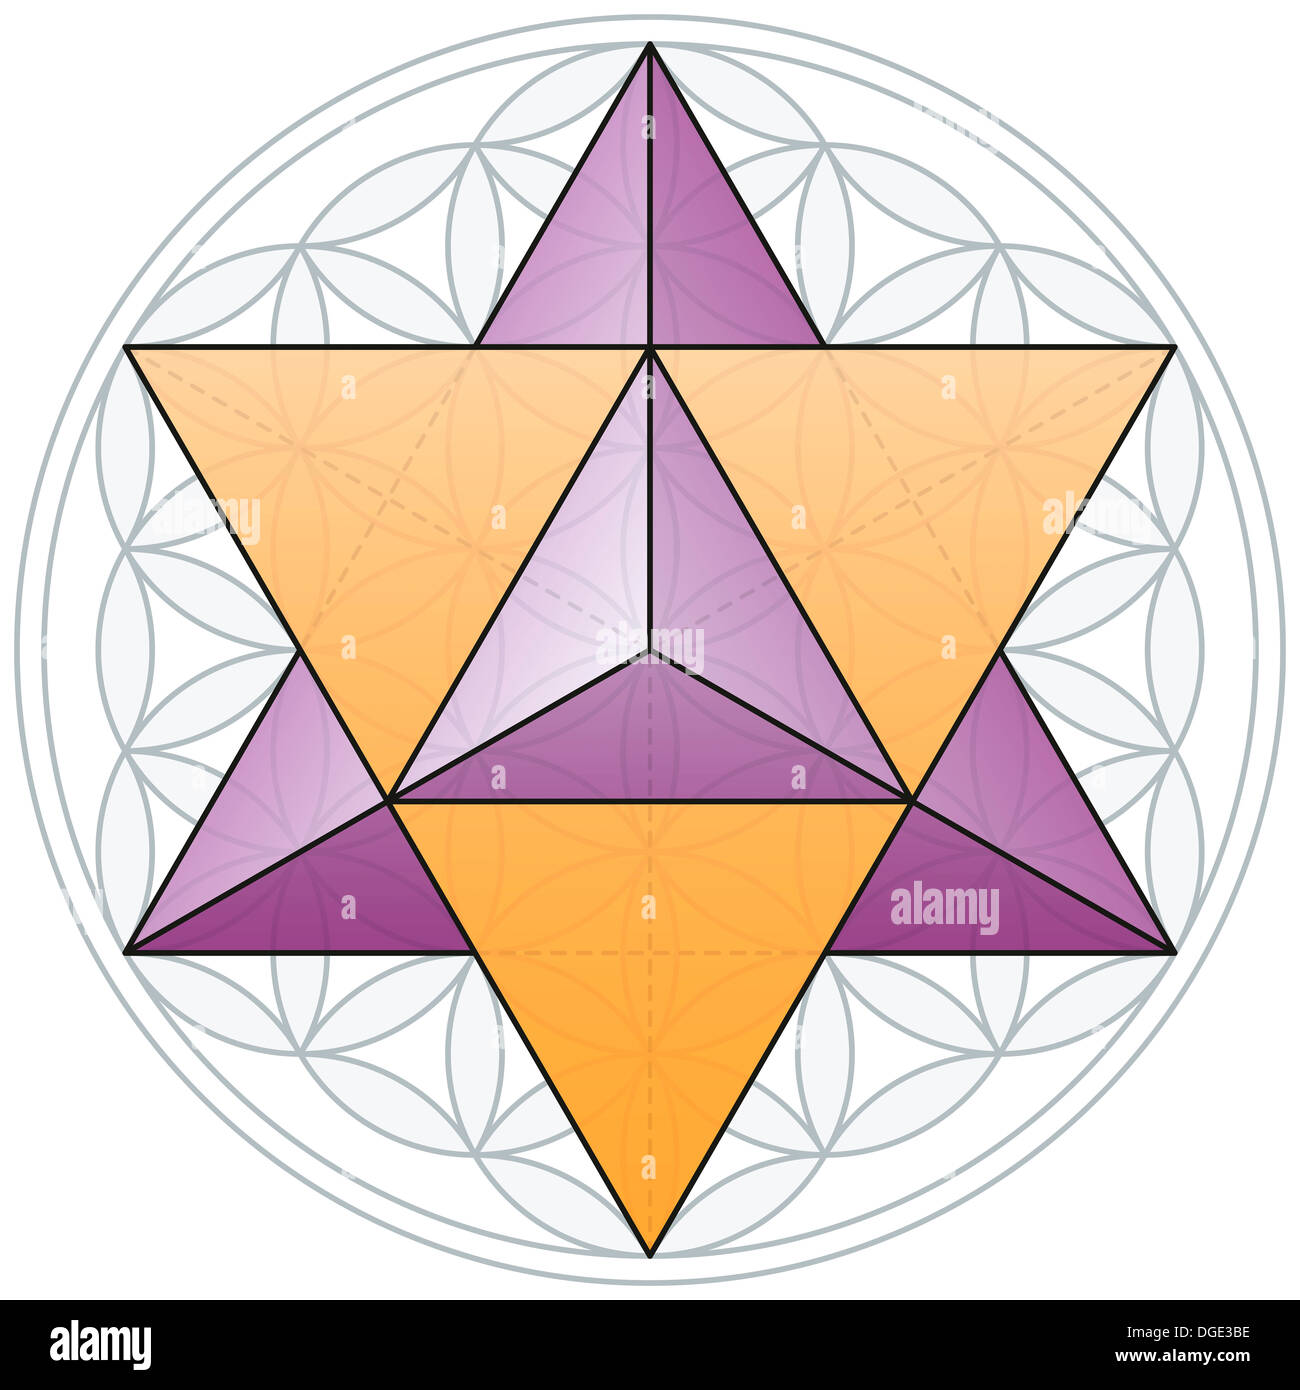 Merkaba, the double tetrahedron, fits in the Flower of Life, a geometrical figure - Stock Image